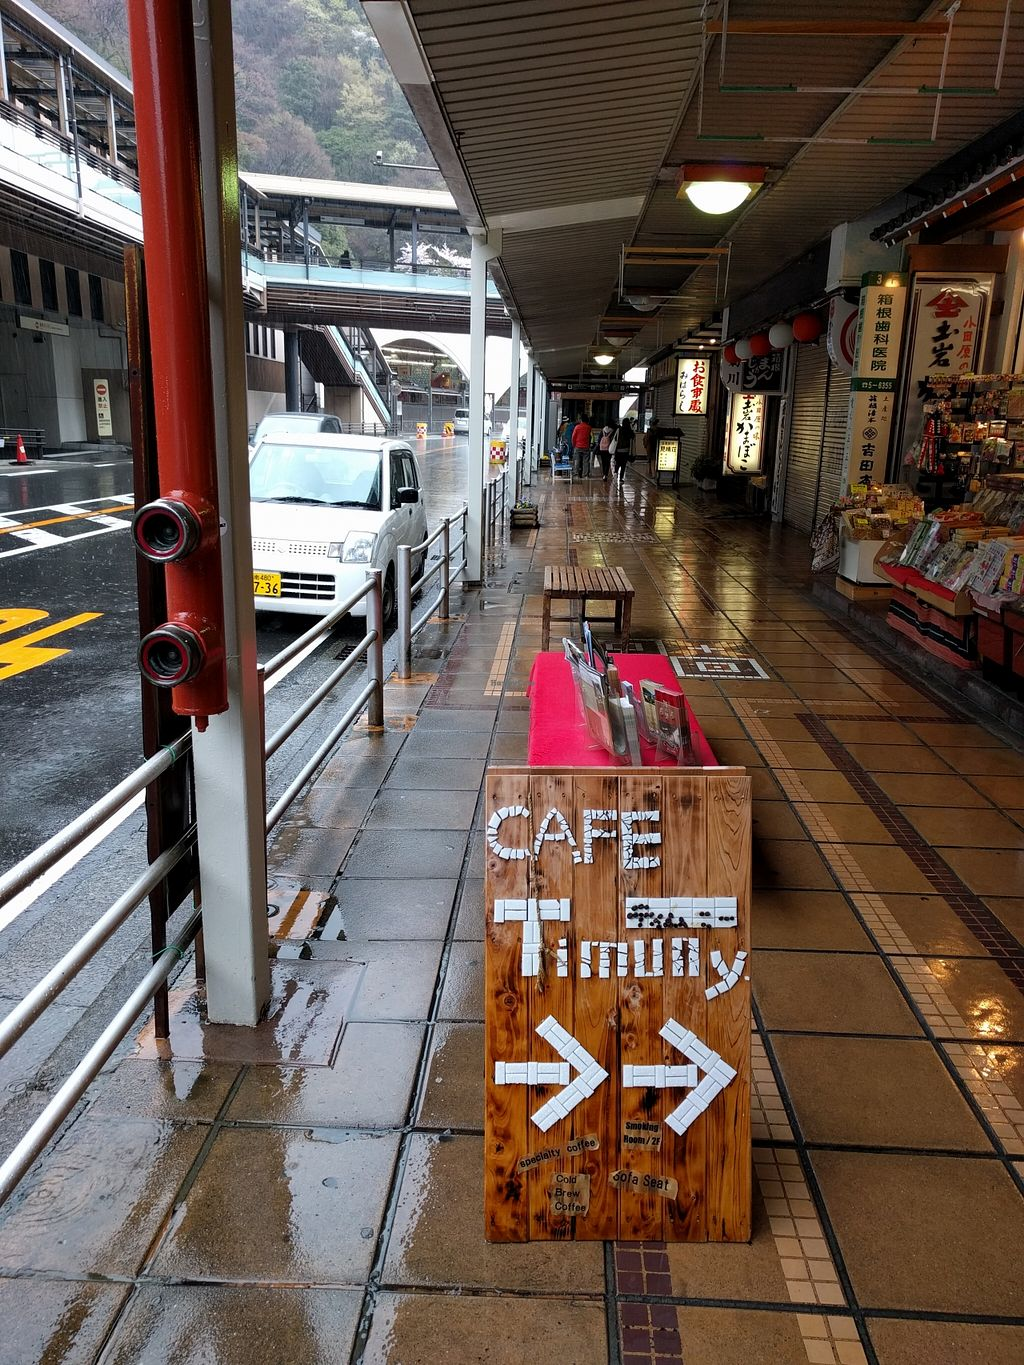 """Photo of Cafe Timuny  by <a href=""""/members/profile/davdaven"""">davdaven</a> <br/>sign from street <br/> April 17, 2016  - <a href='/contact/abuse/image/72069/144943'>Report</a>"""